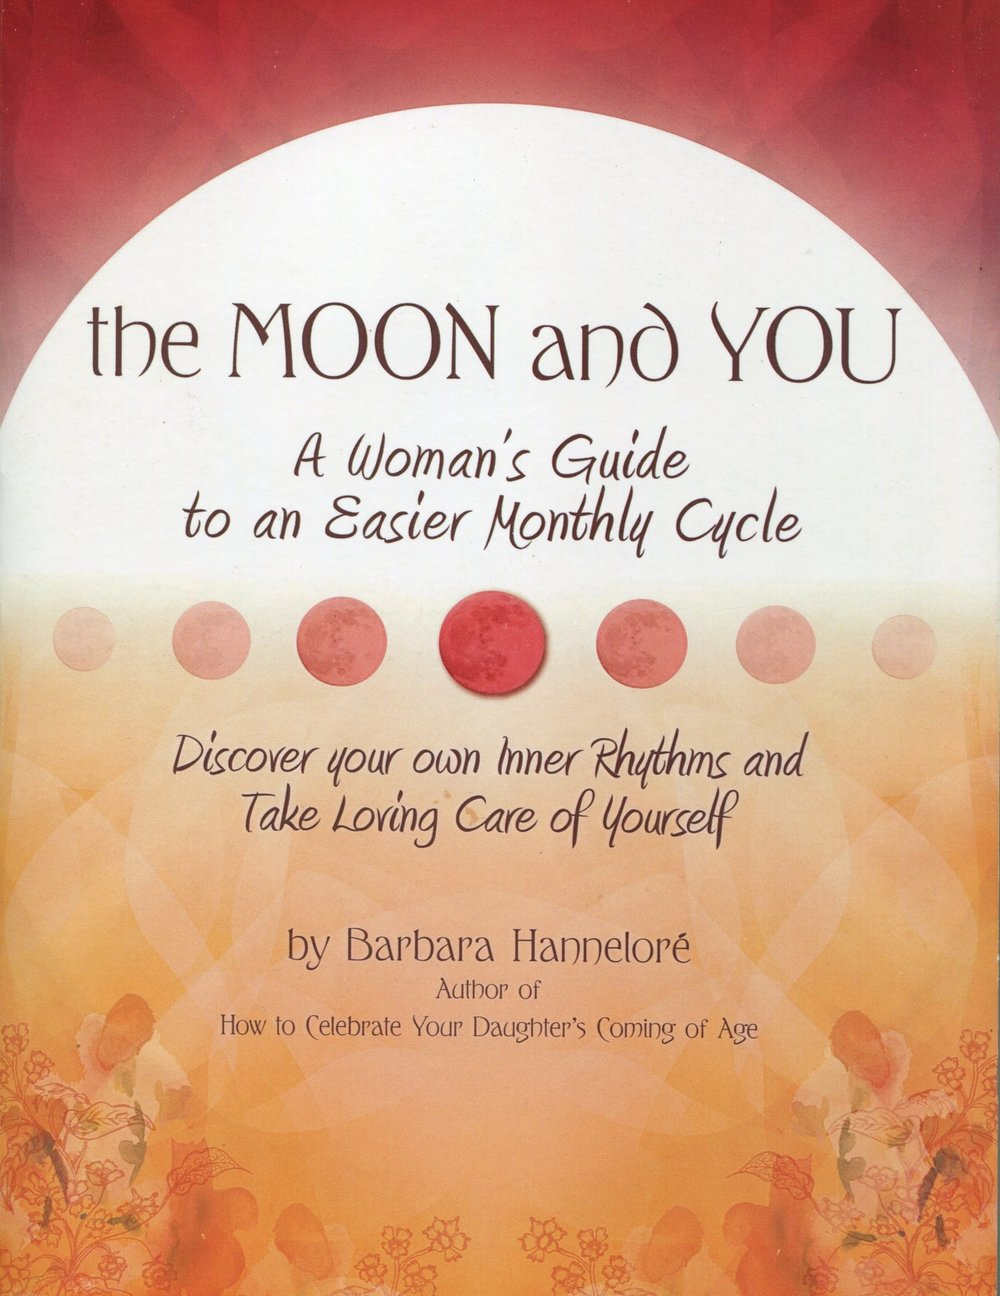 the moon and you, by barbara hannelore. developed by naomi rose